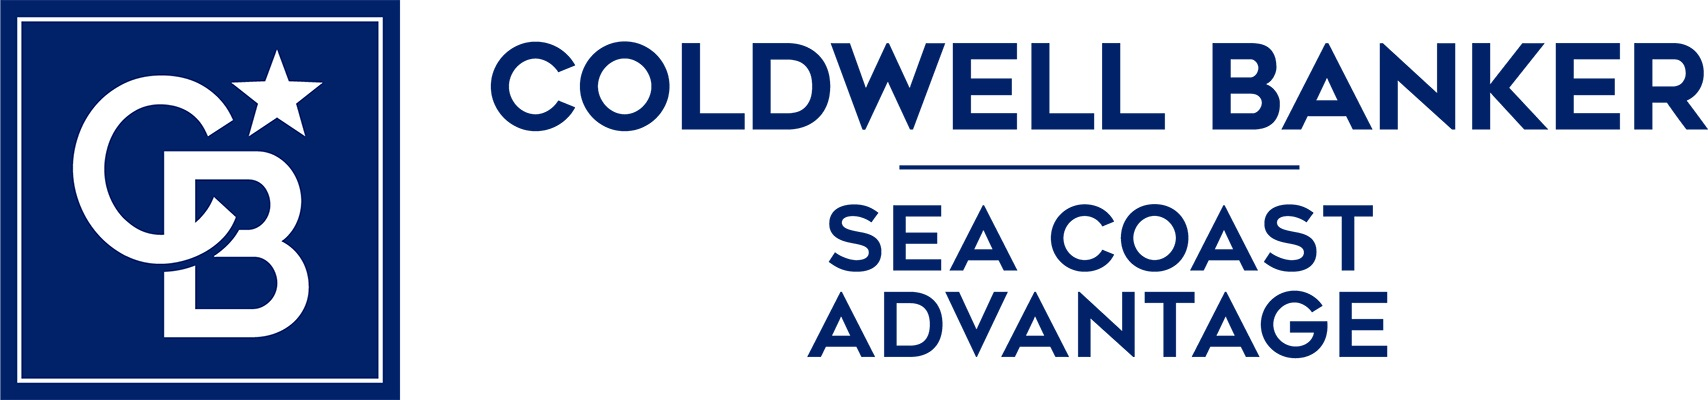 Cheryl Kuntz-Lowery - Coldwell Banker Sea Coast Advantage Realty